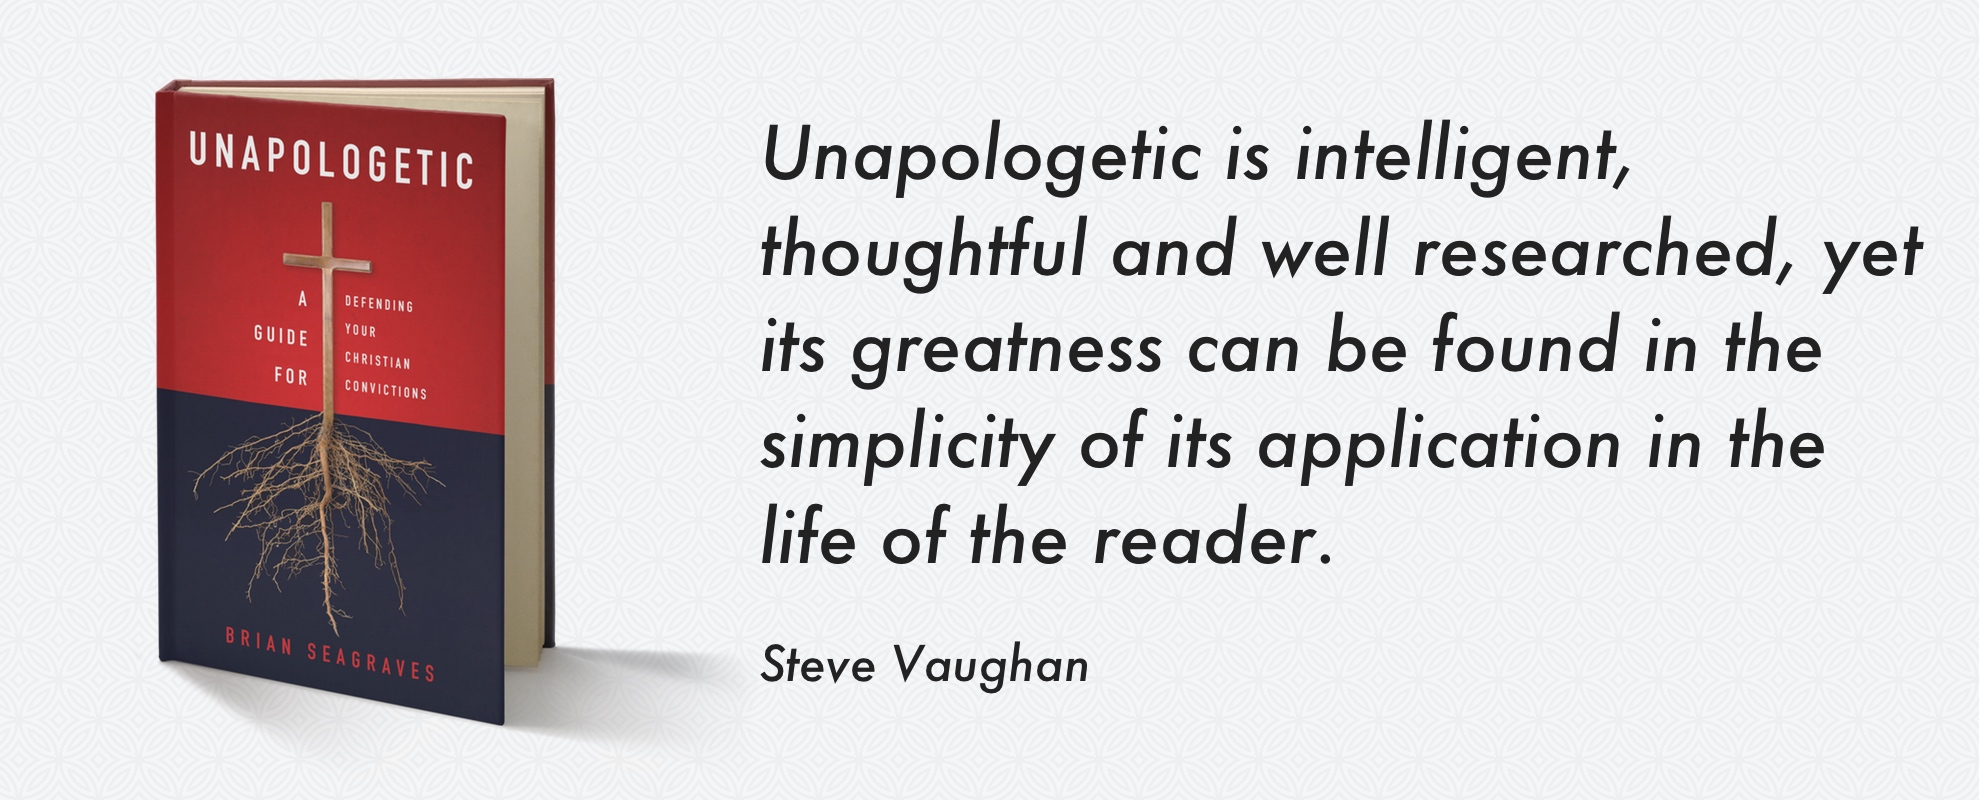 Preorder the book, Unapologetic, on Amazon